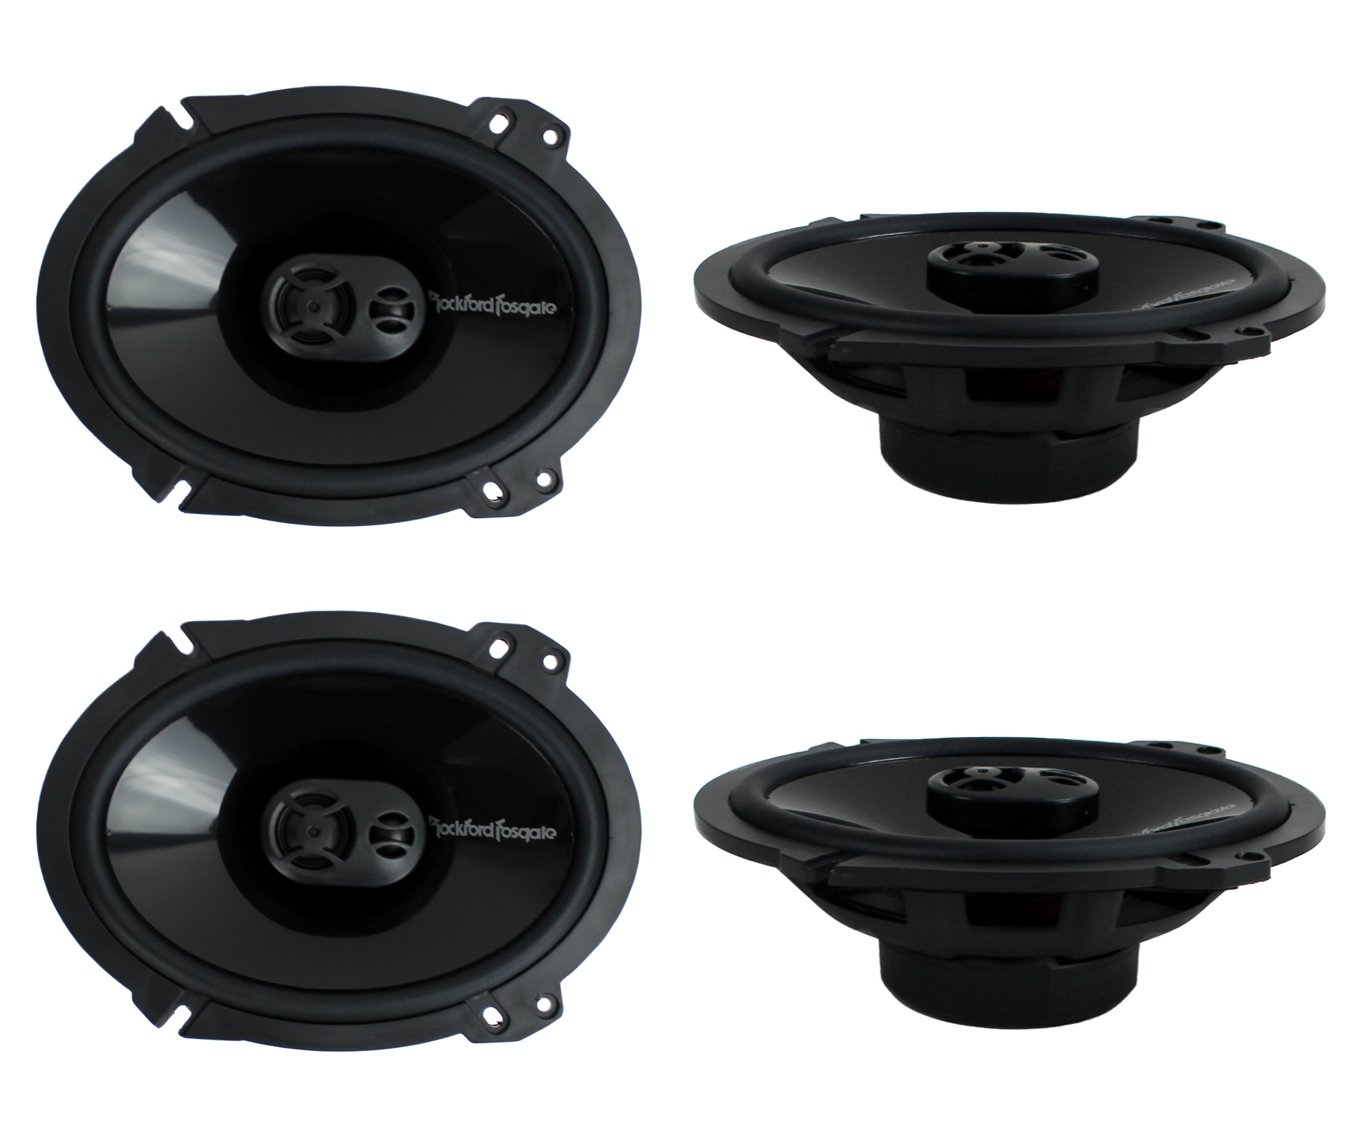 2 Pairs of Rockford Fosgate Punch P1683 260W Peak (130W RMS) 6'' x 8'' Punch Series 3-Way Full Range Coaxial Speakers + Gravity Phone Magnet Holder by Rockford Fosgate